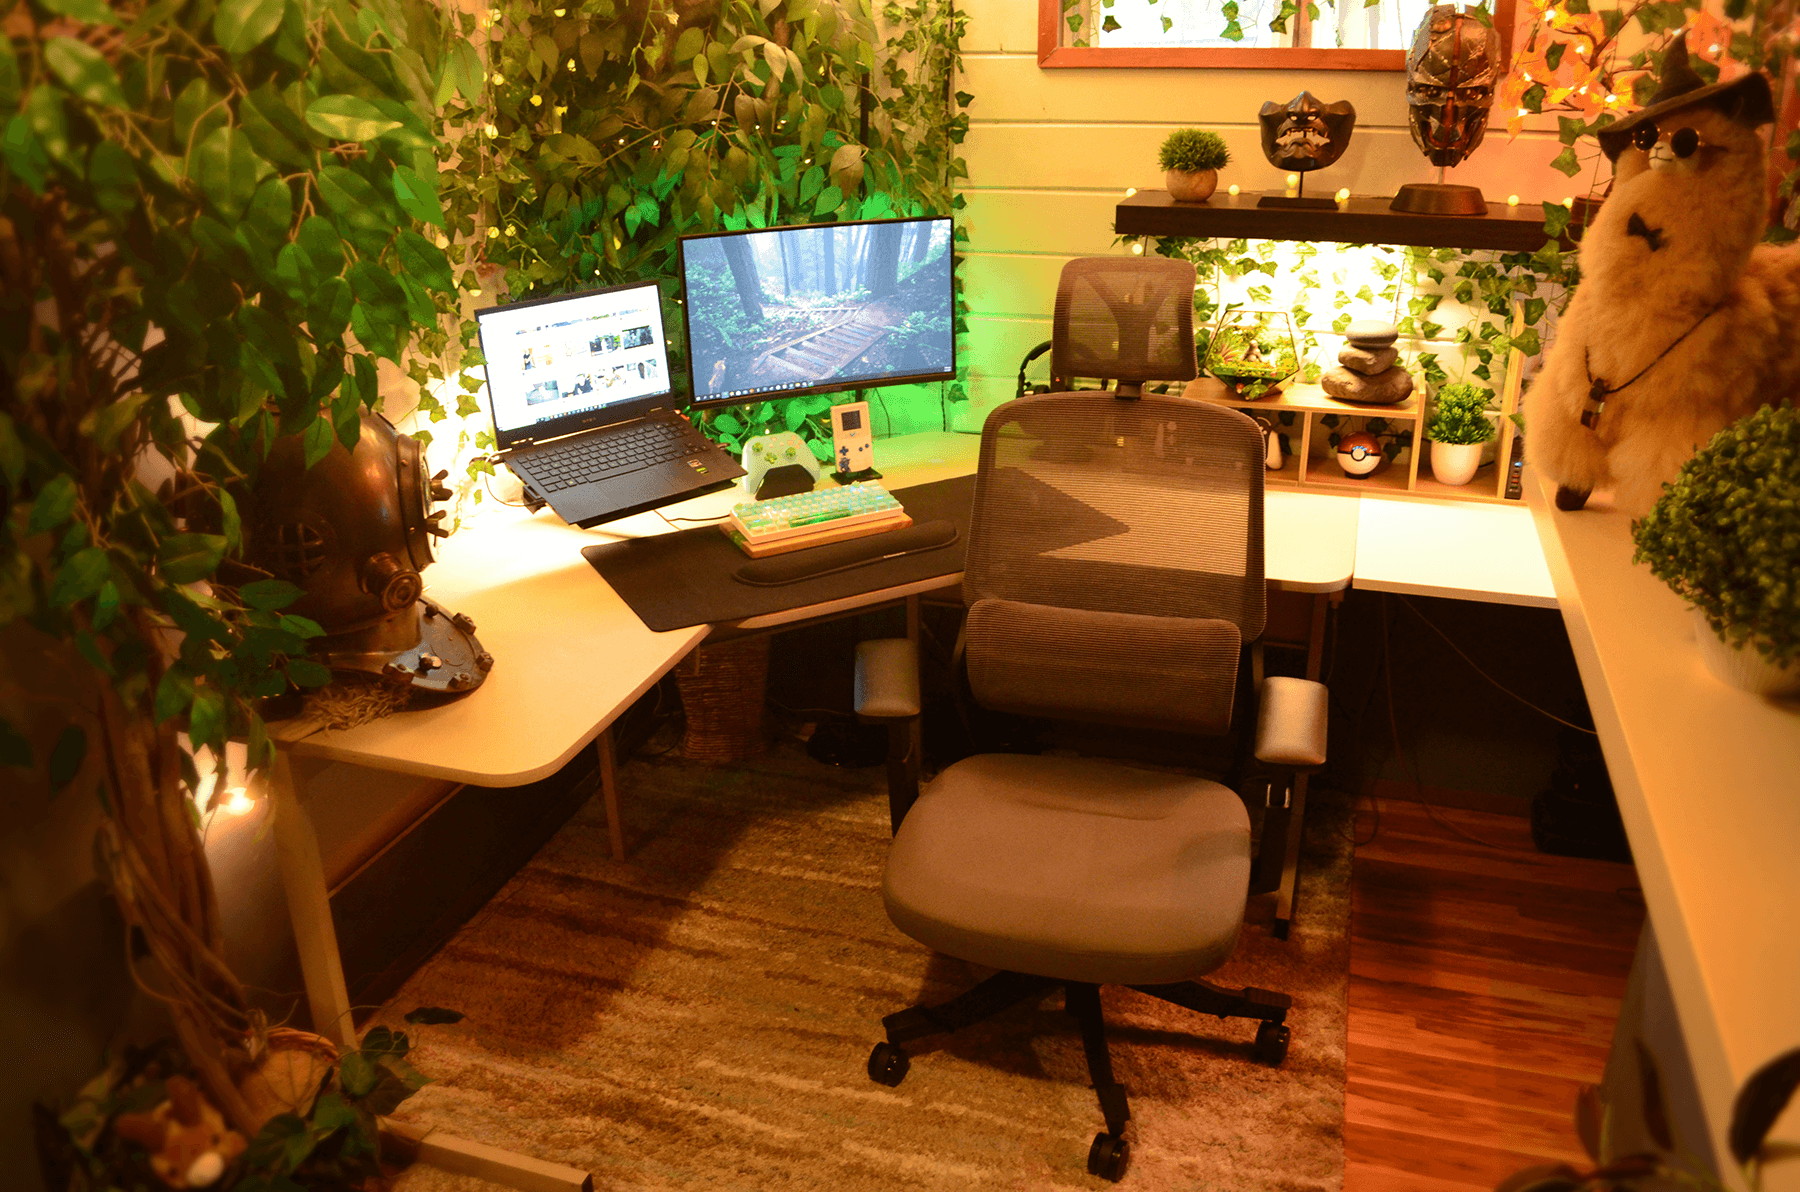 A WFH setup with lots of plants and an alpaca wearing a hat and sunglasses